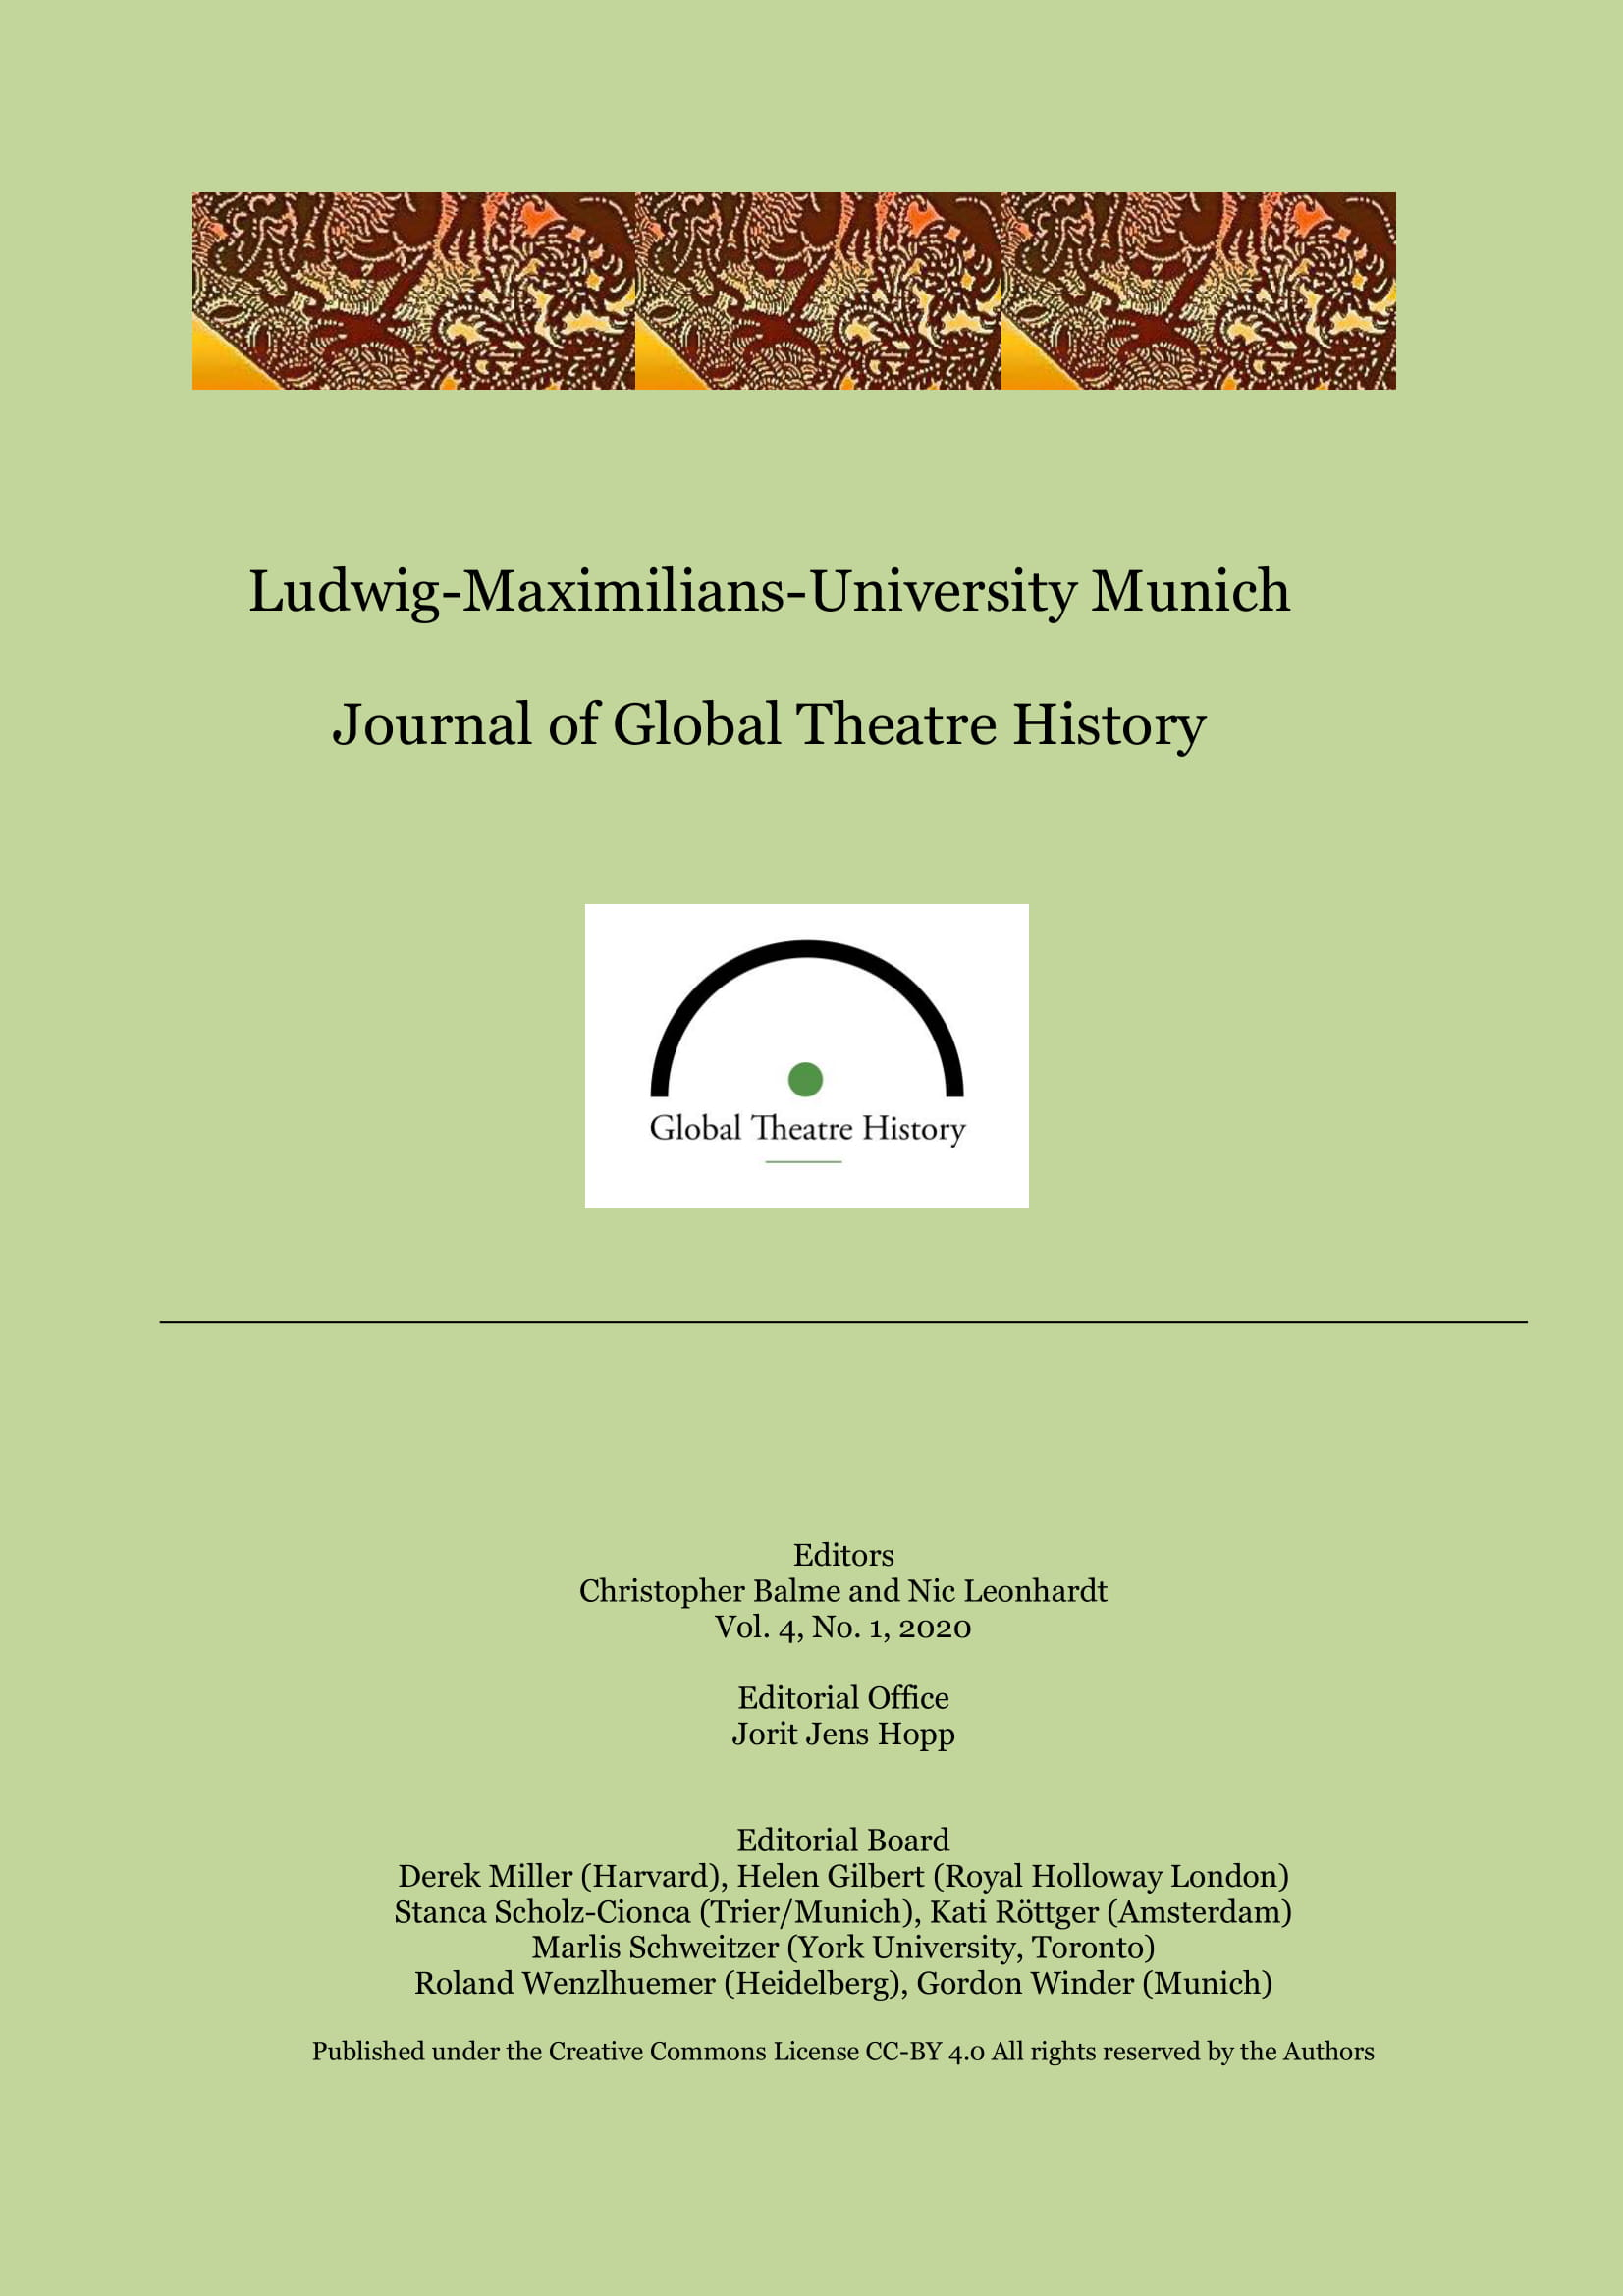 View Vol. 4 No. 1 (2020): Journal of Global Theatre History